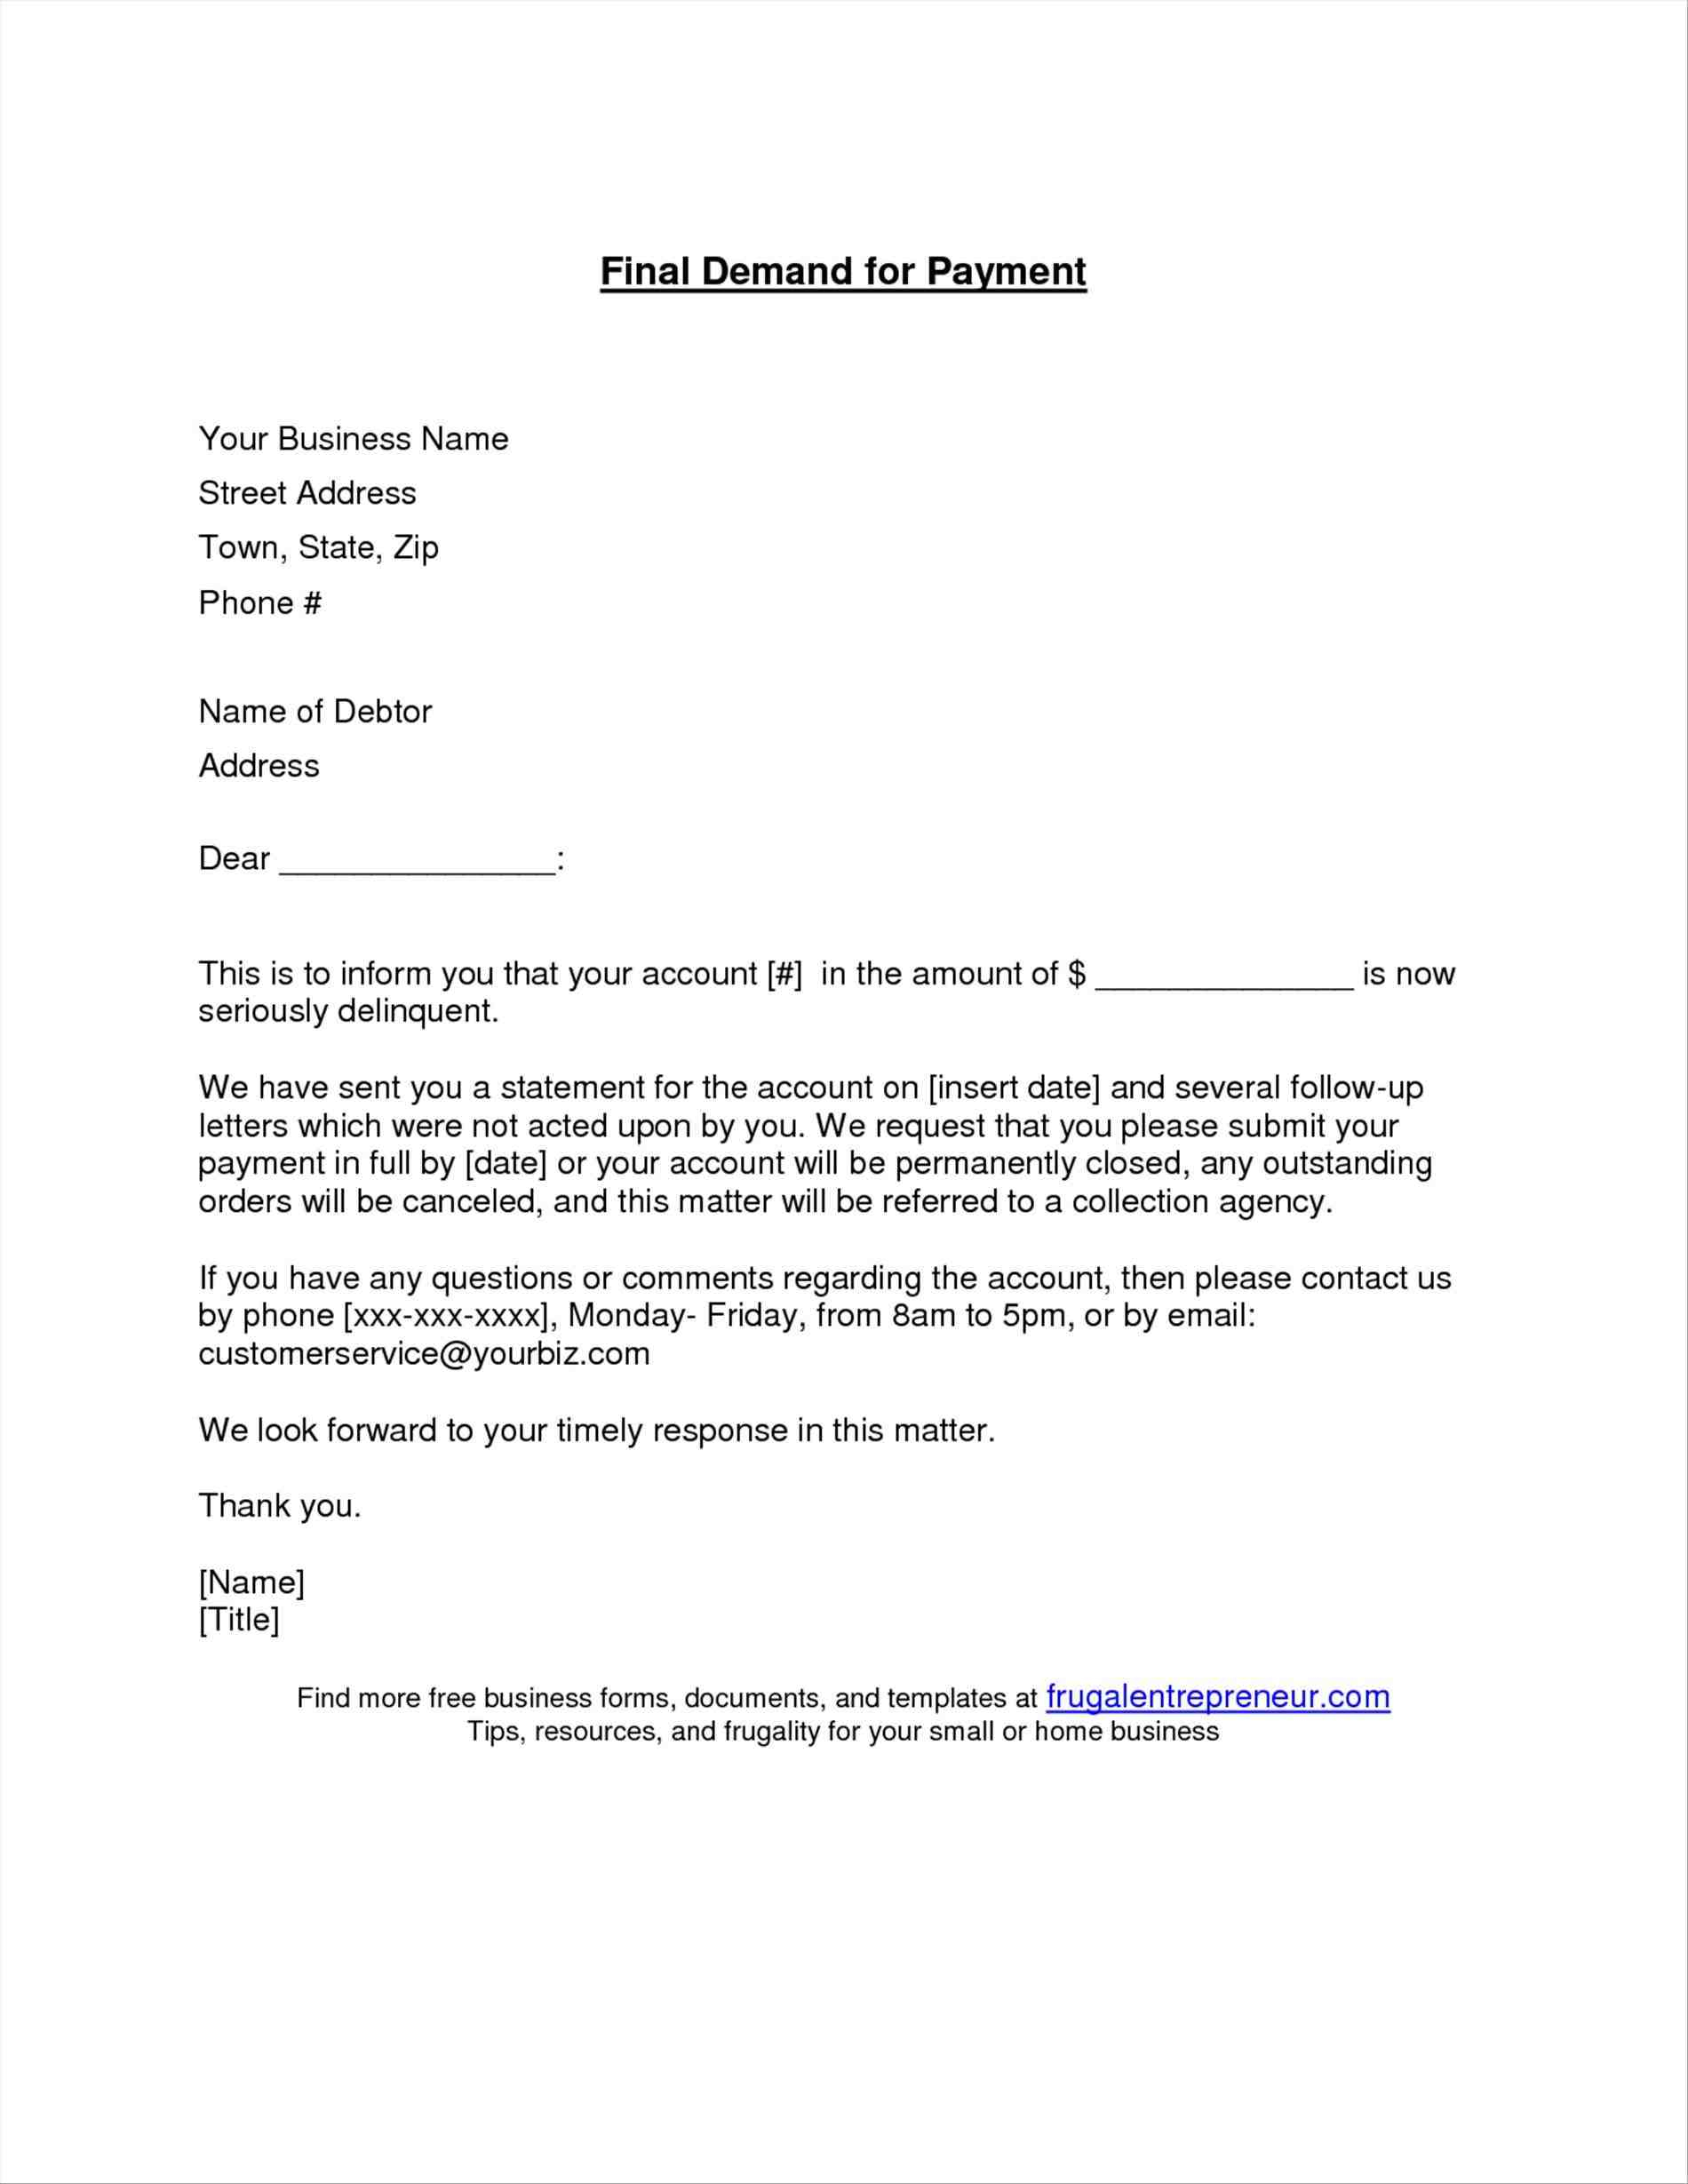 Demand for Payment Letter Template Free - Old Fashioned Demand Letter Administrative Ficer Cover